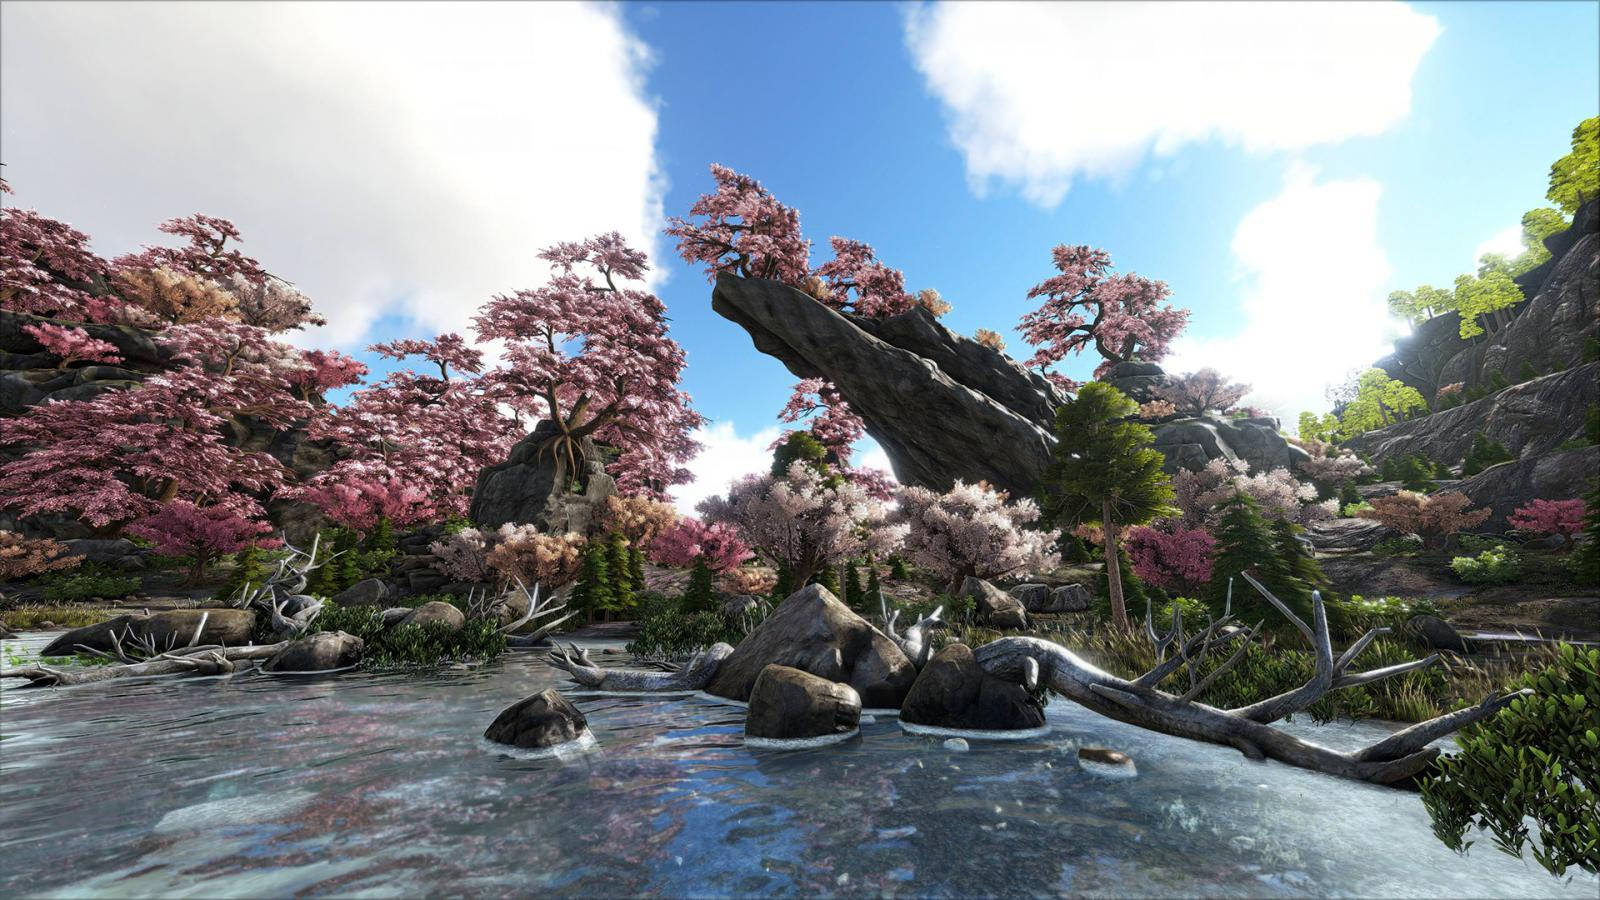 Rahthos Cherry Blossoms Super Resolution Jpg Official Media Ark Official Community Forums